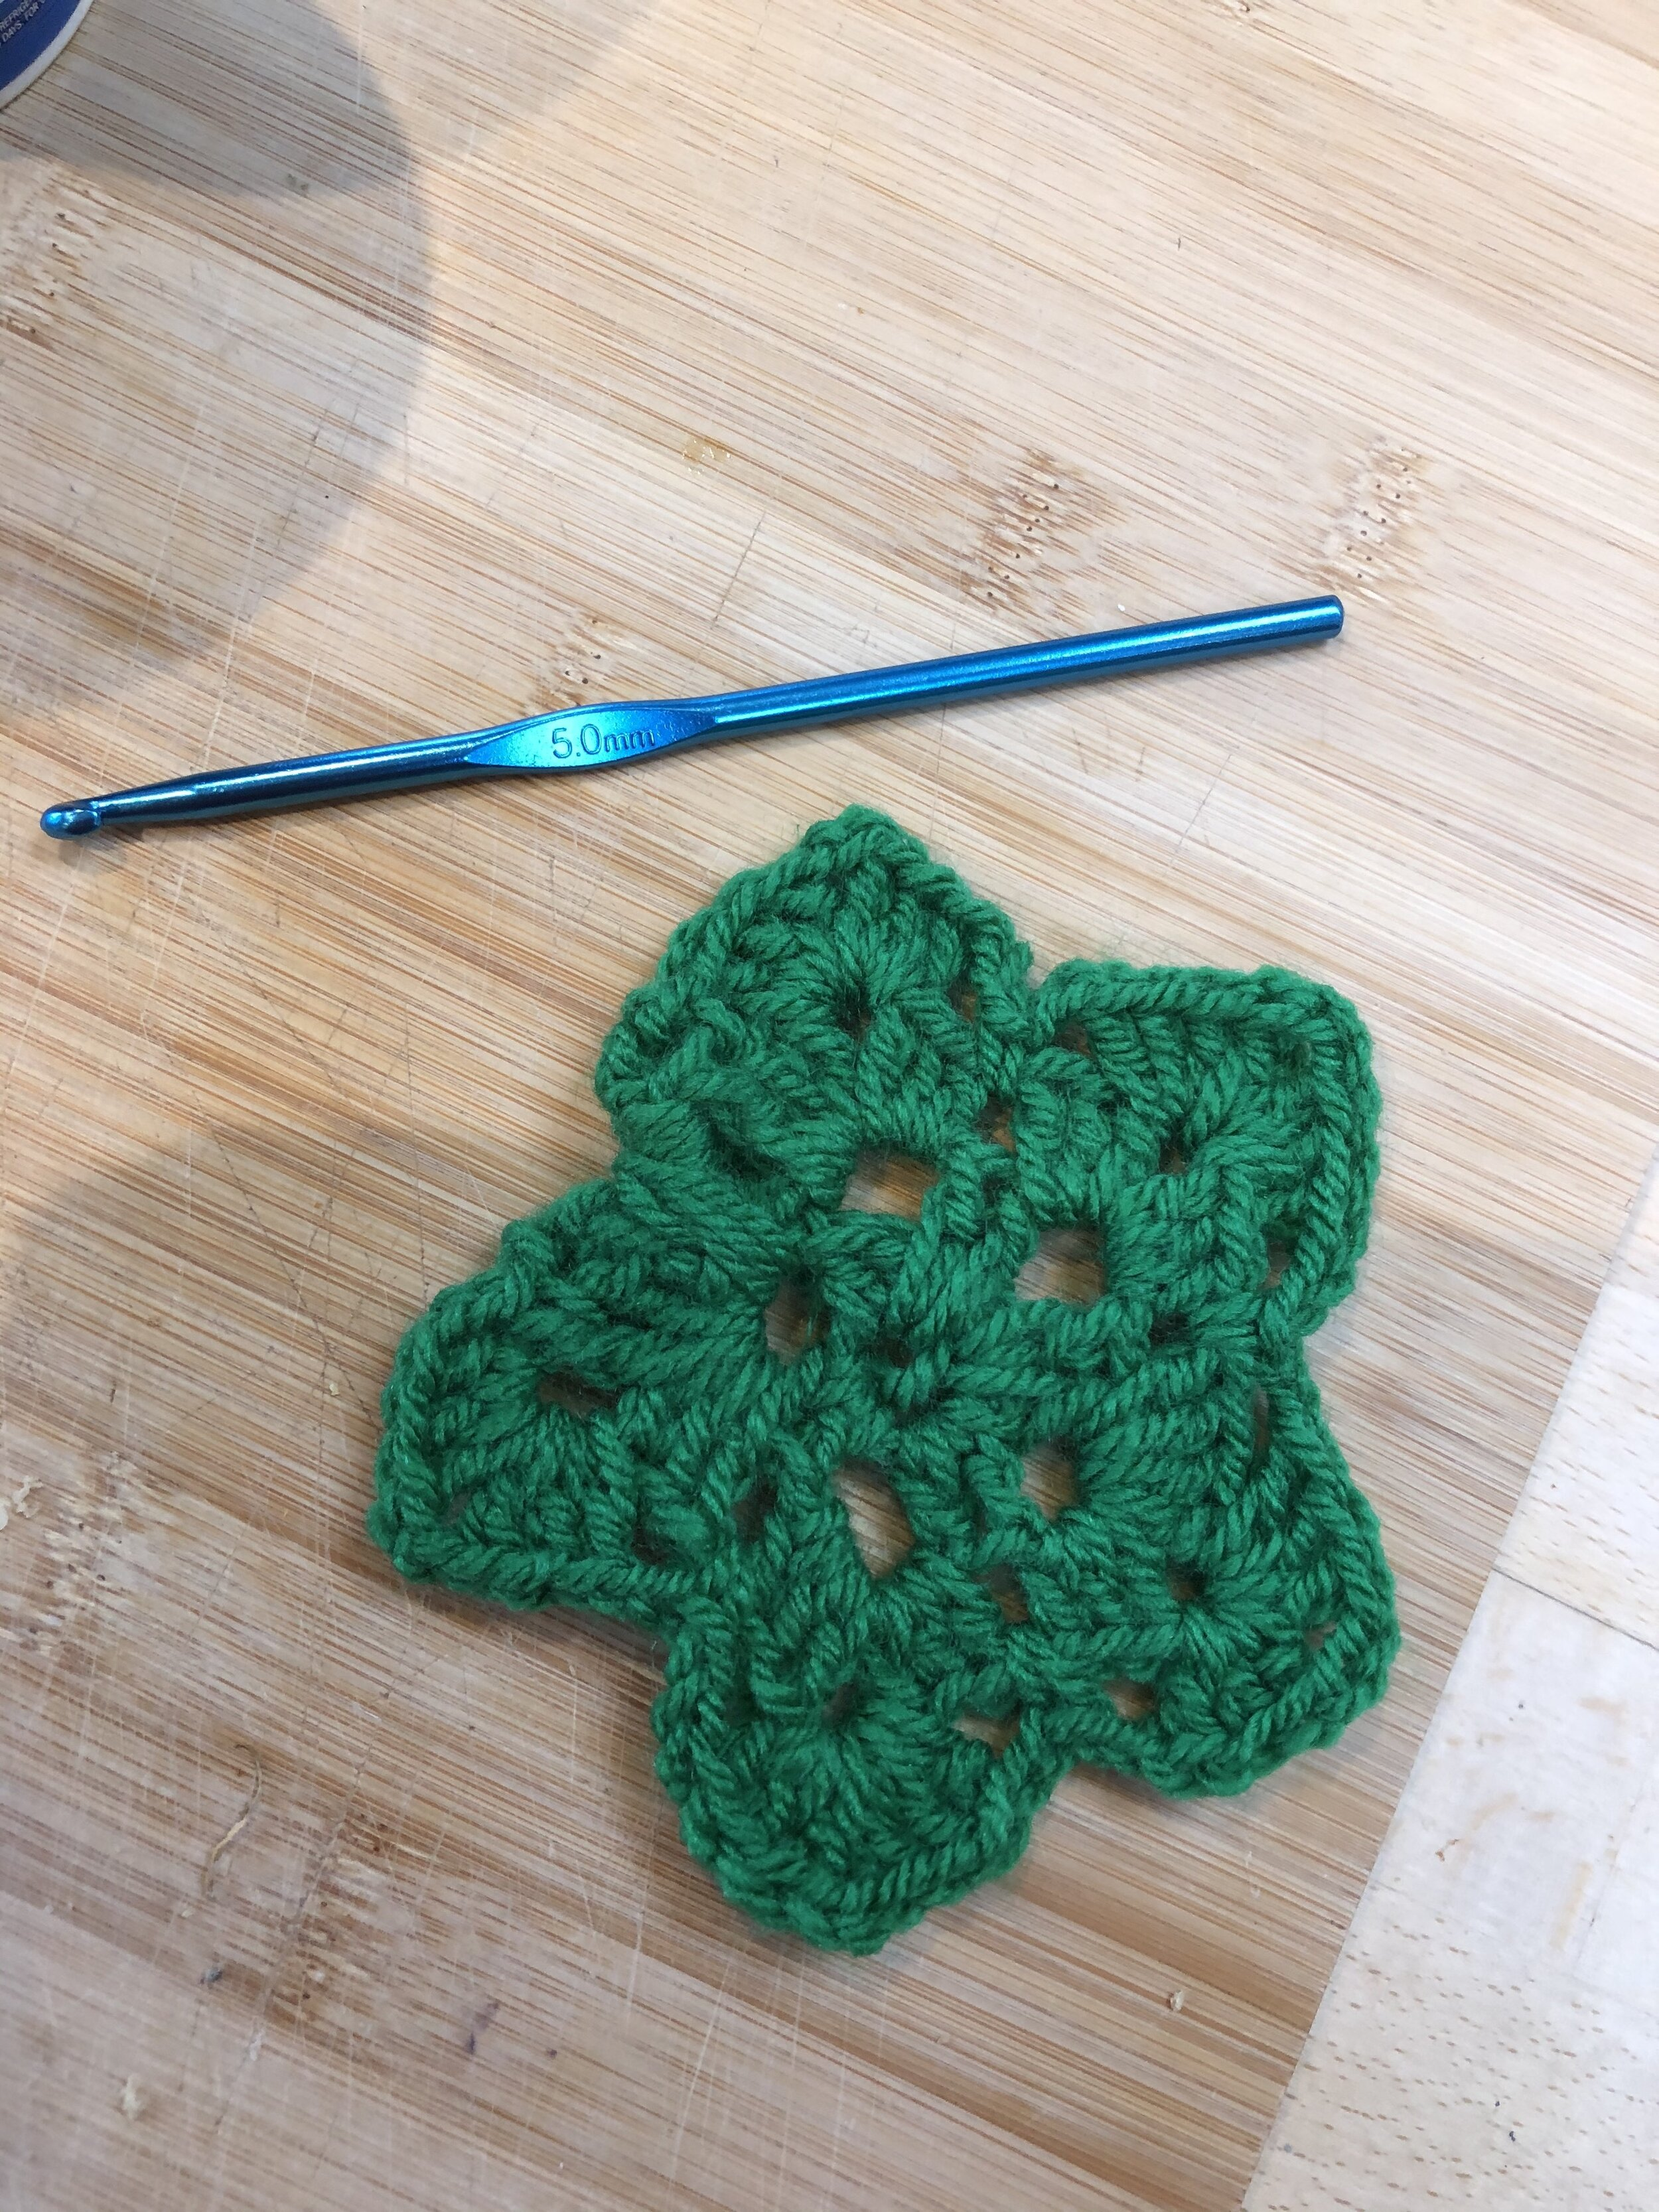 Give crochet a go this year! Autumn Bucket list 2019